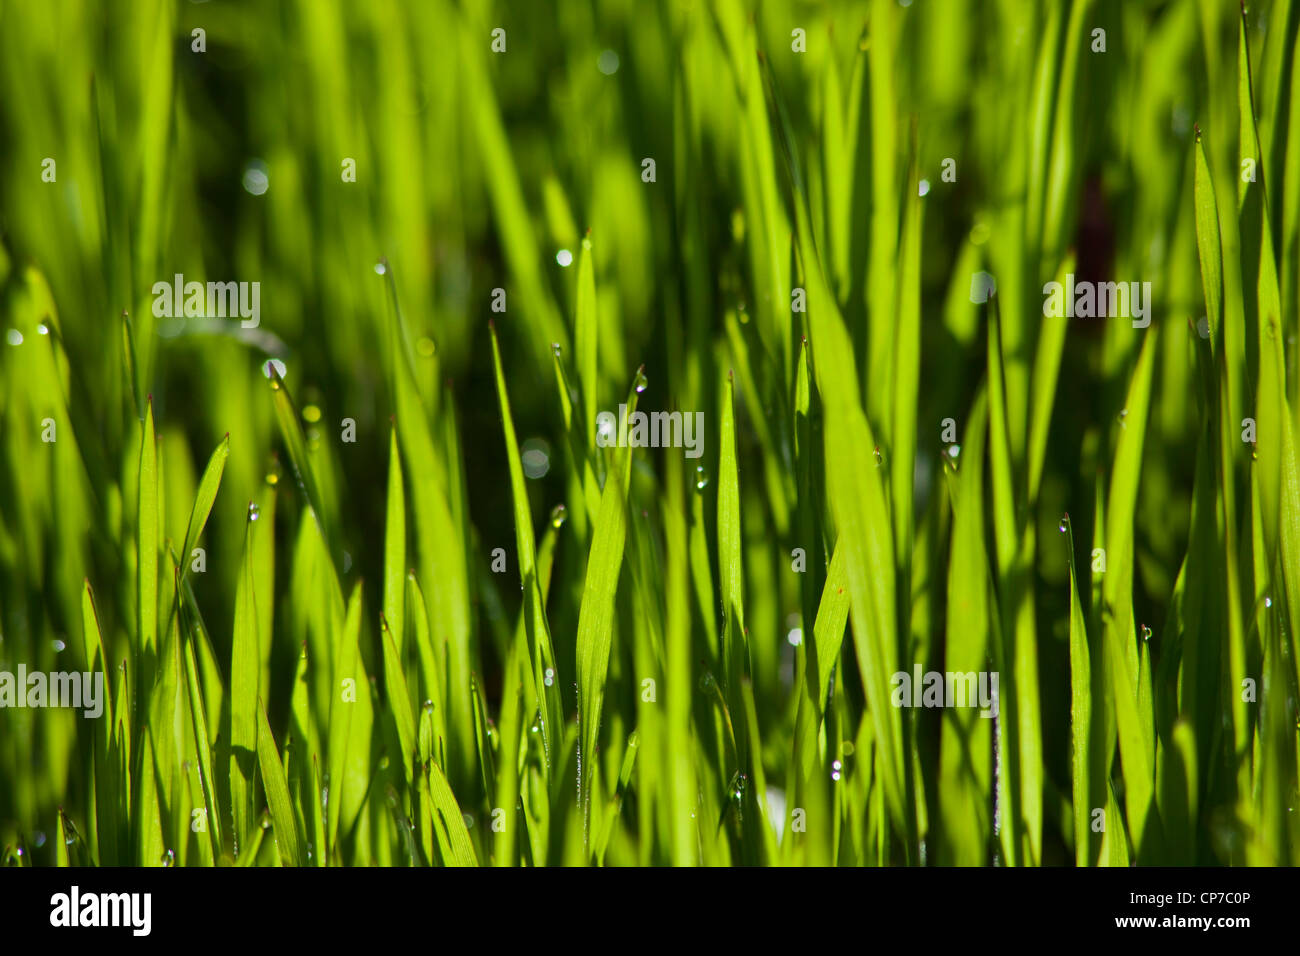 Grass, Lawn, Green, Green. - Stock Image